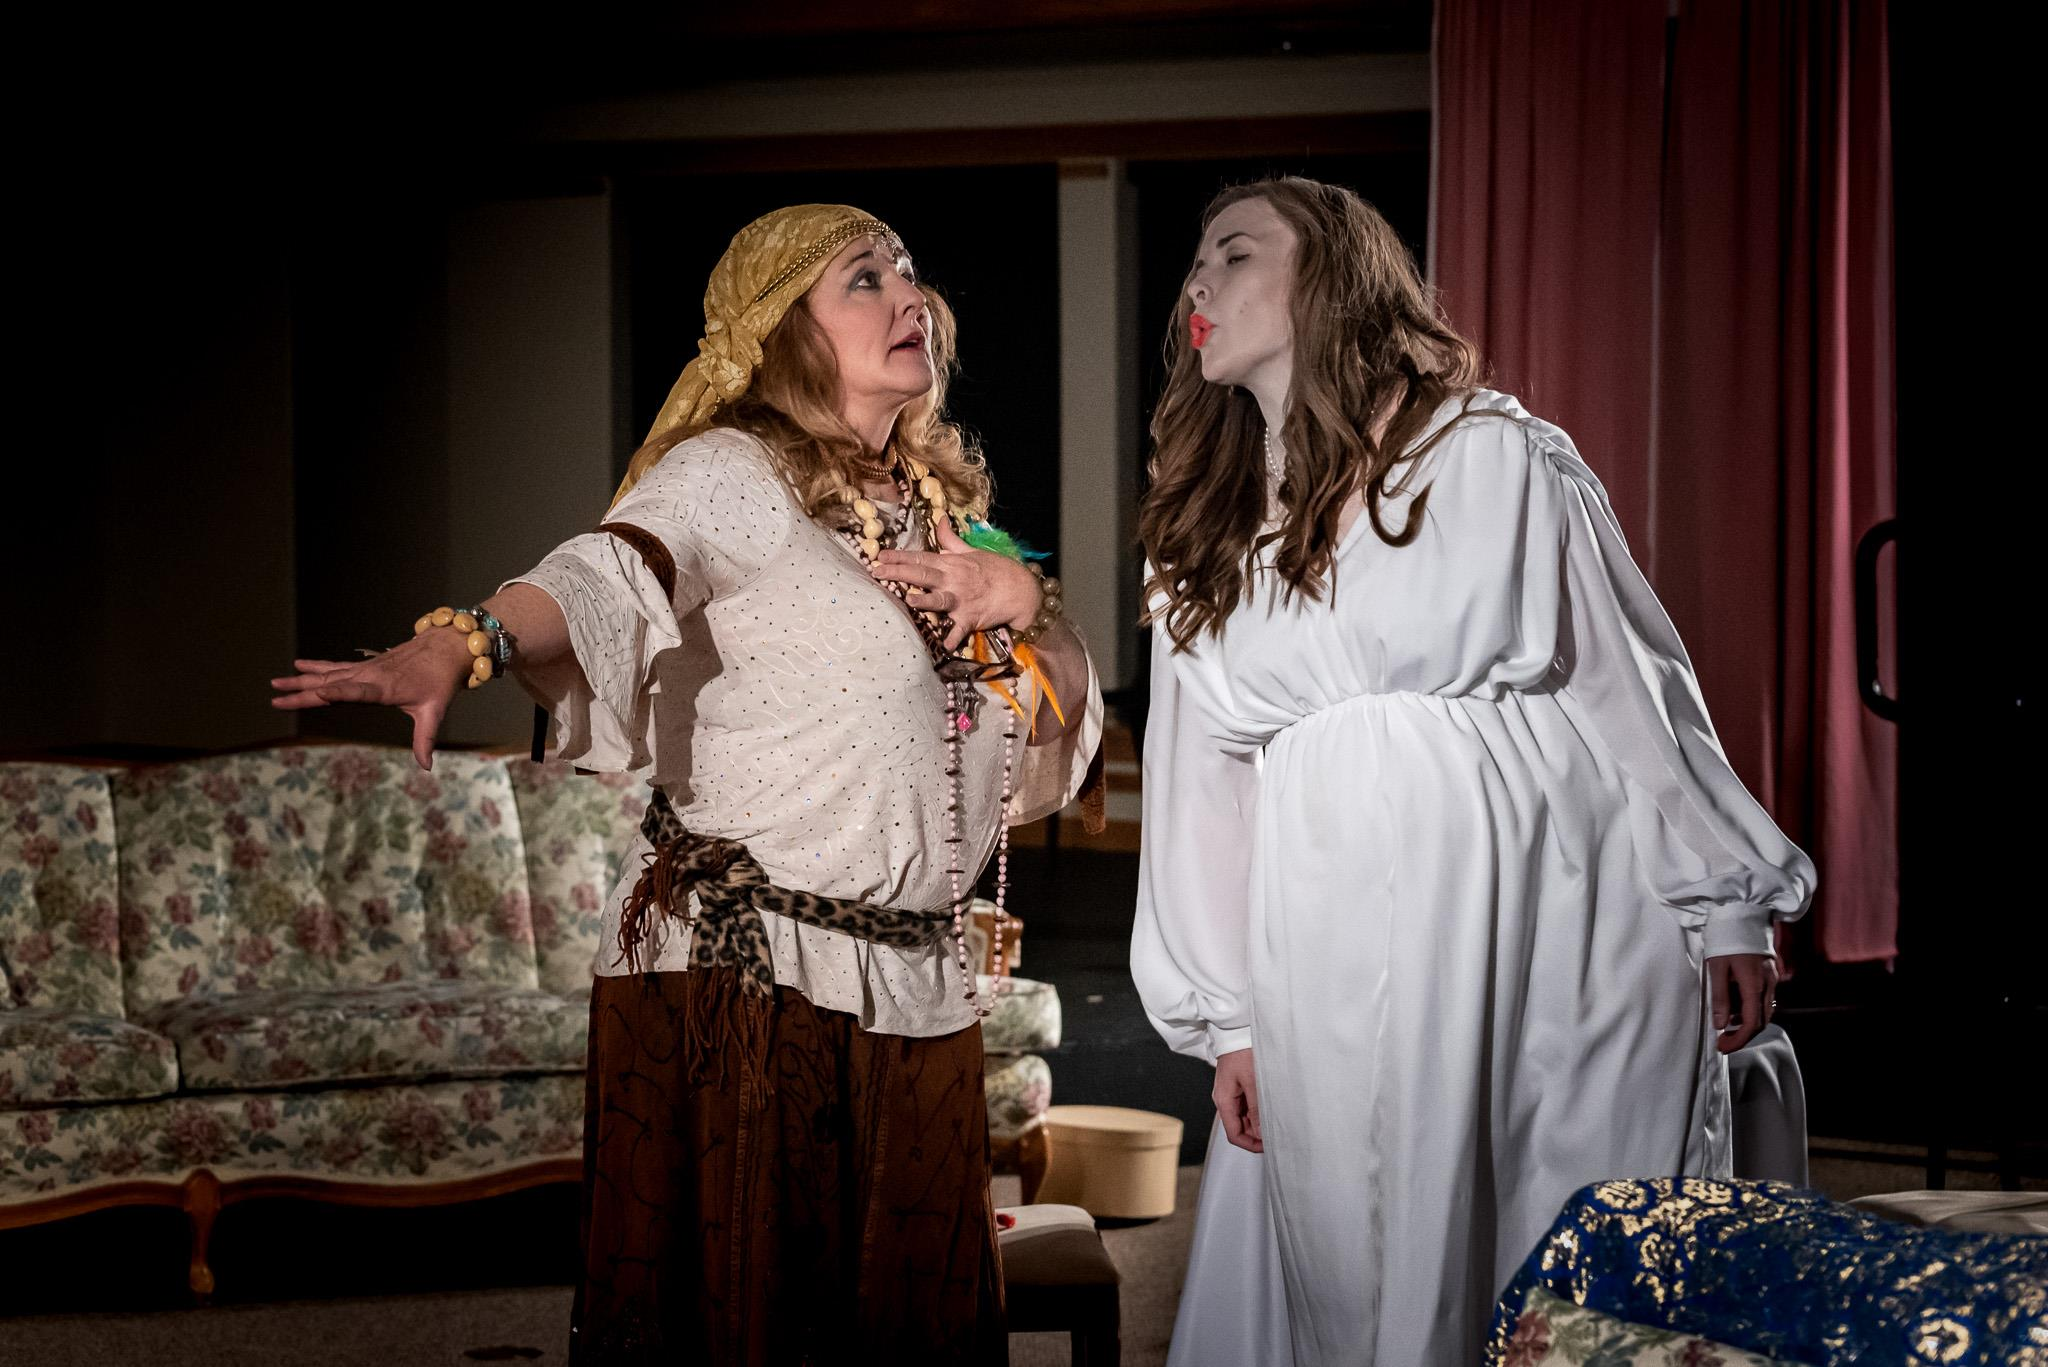 CHERYL PASKINS AS MADAME ARCATI AND HAYLEY LAMBDIN AS ELVIRA